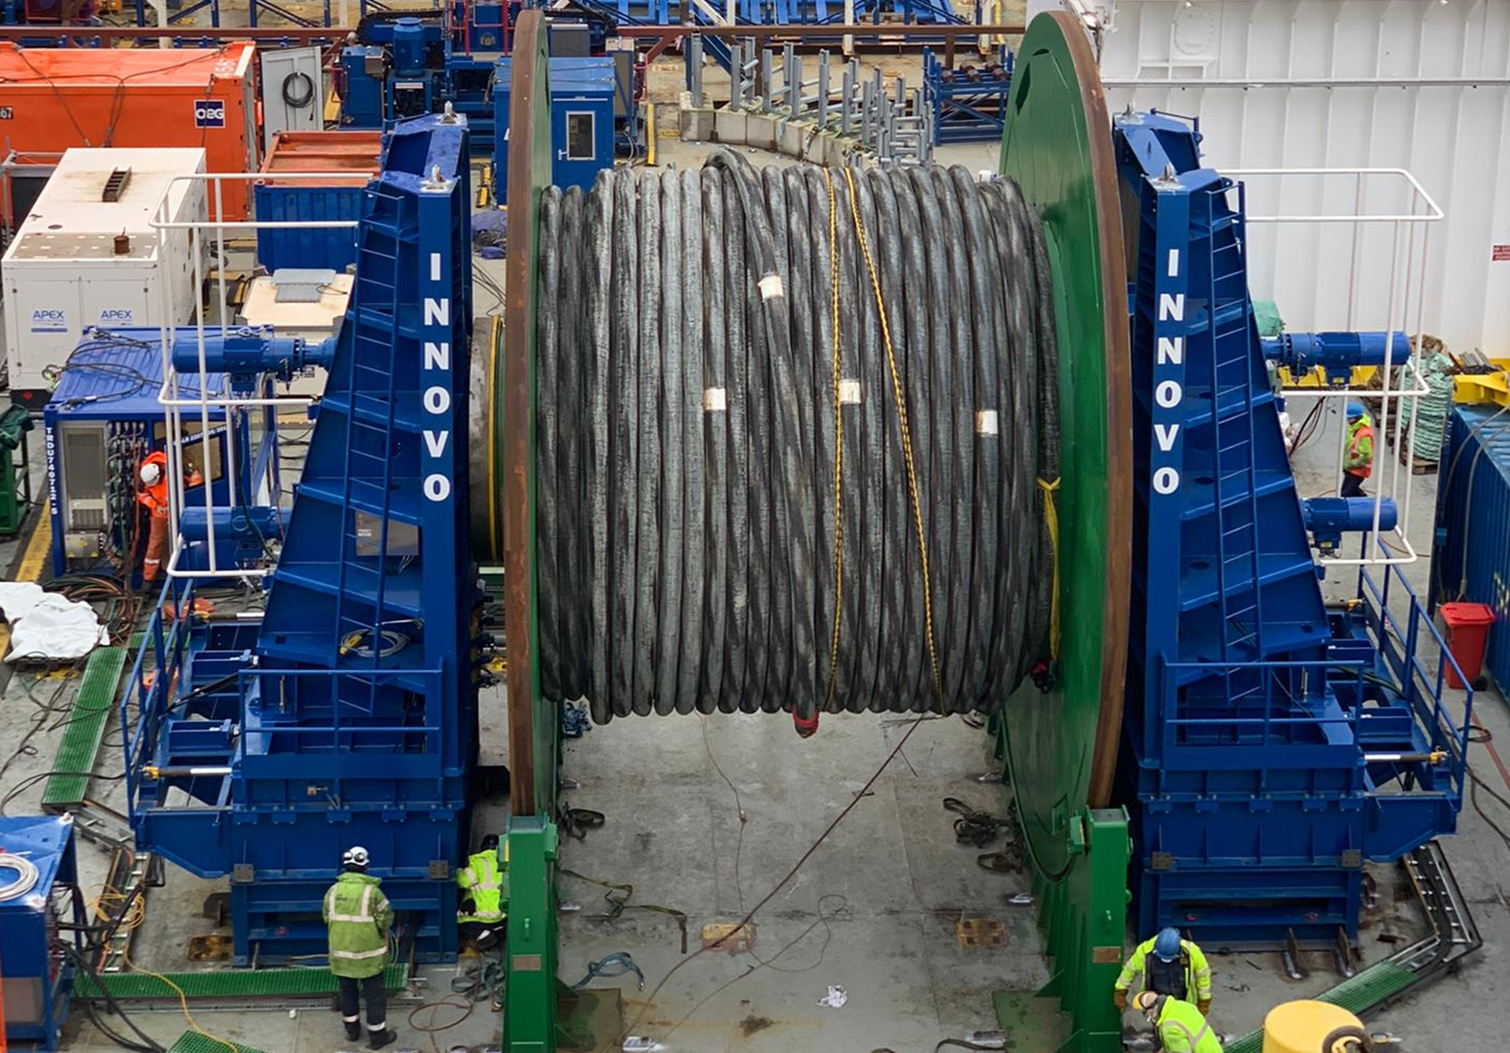 Designing, building and operating electrical reel drive systems worldwide